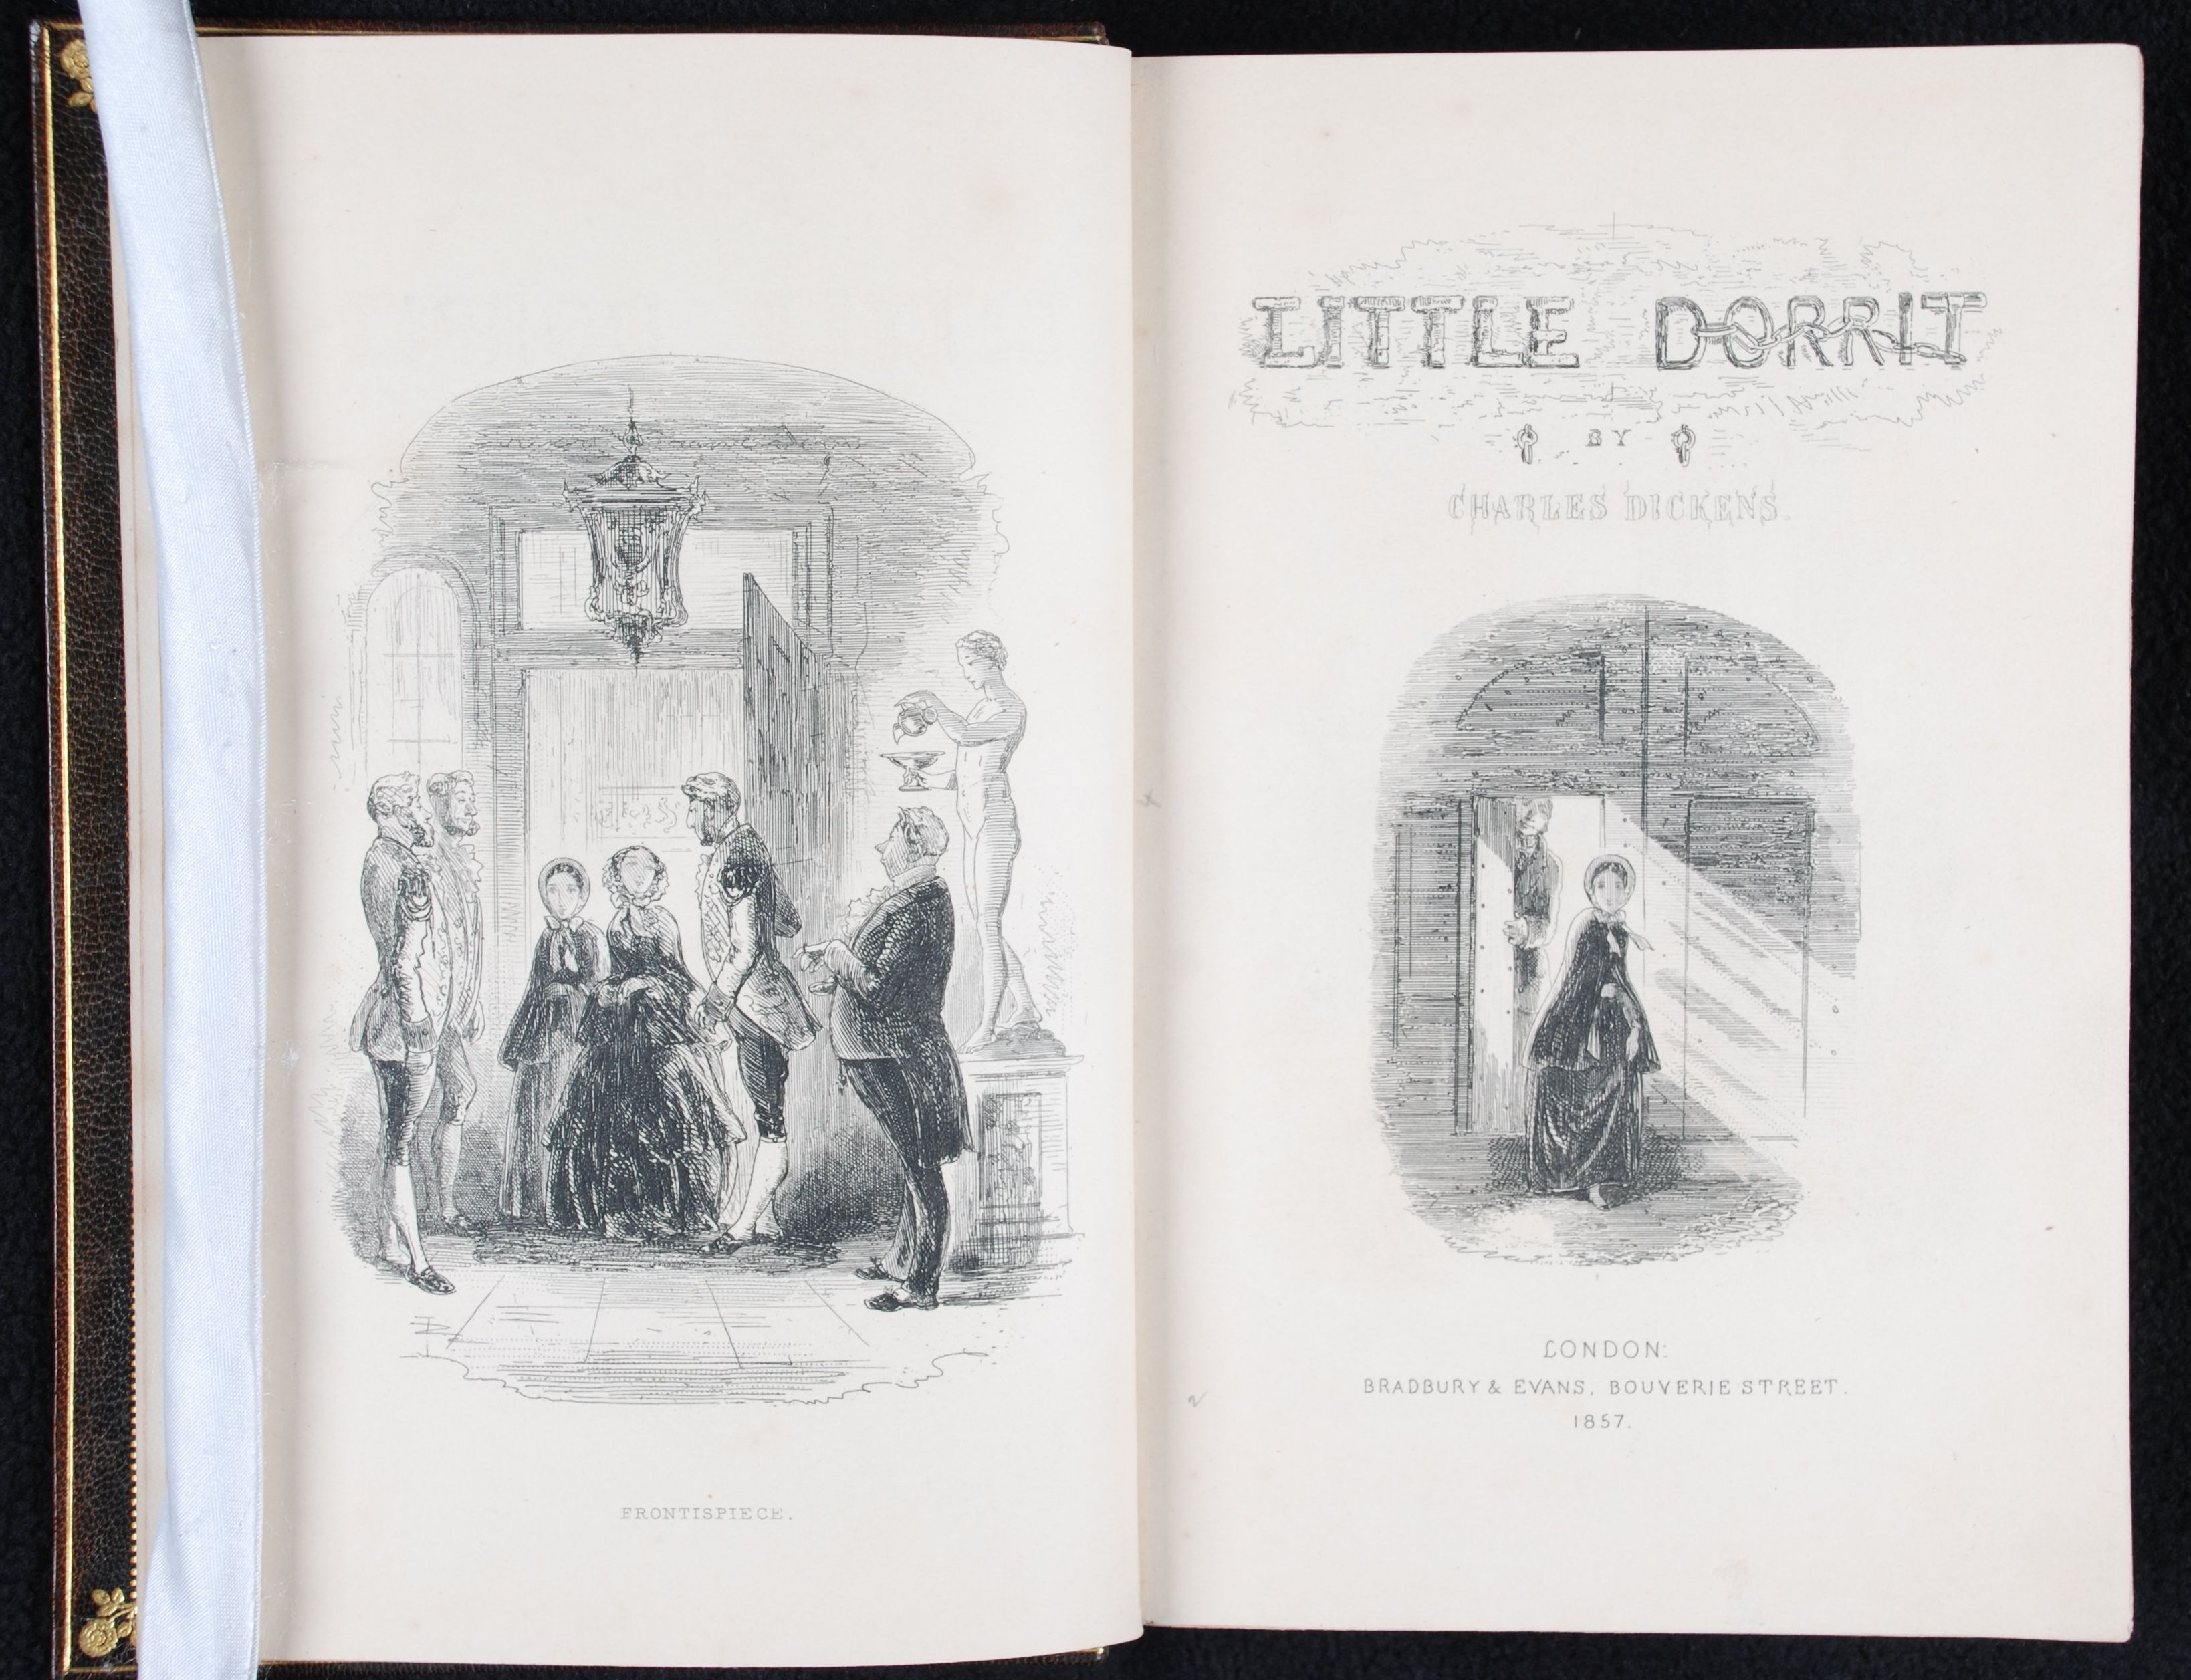 Charles Dickens. Little Dorrit. Illustrations by H.K. Browne. London: Bradbury and Evans, 1857.